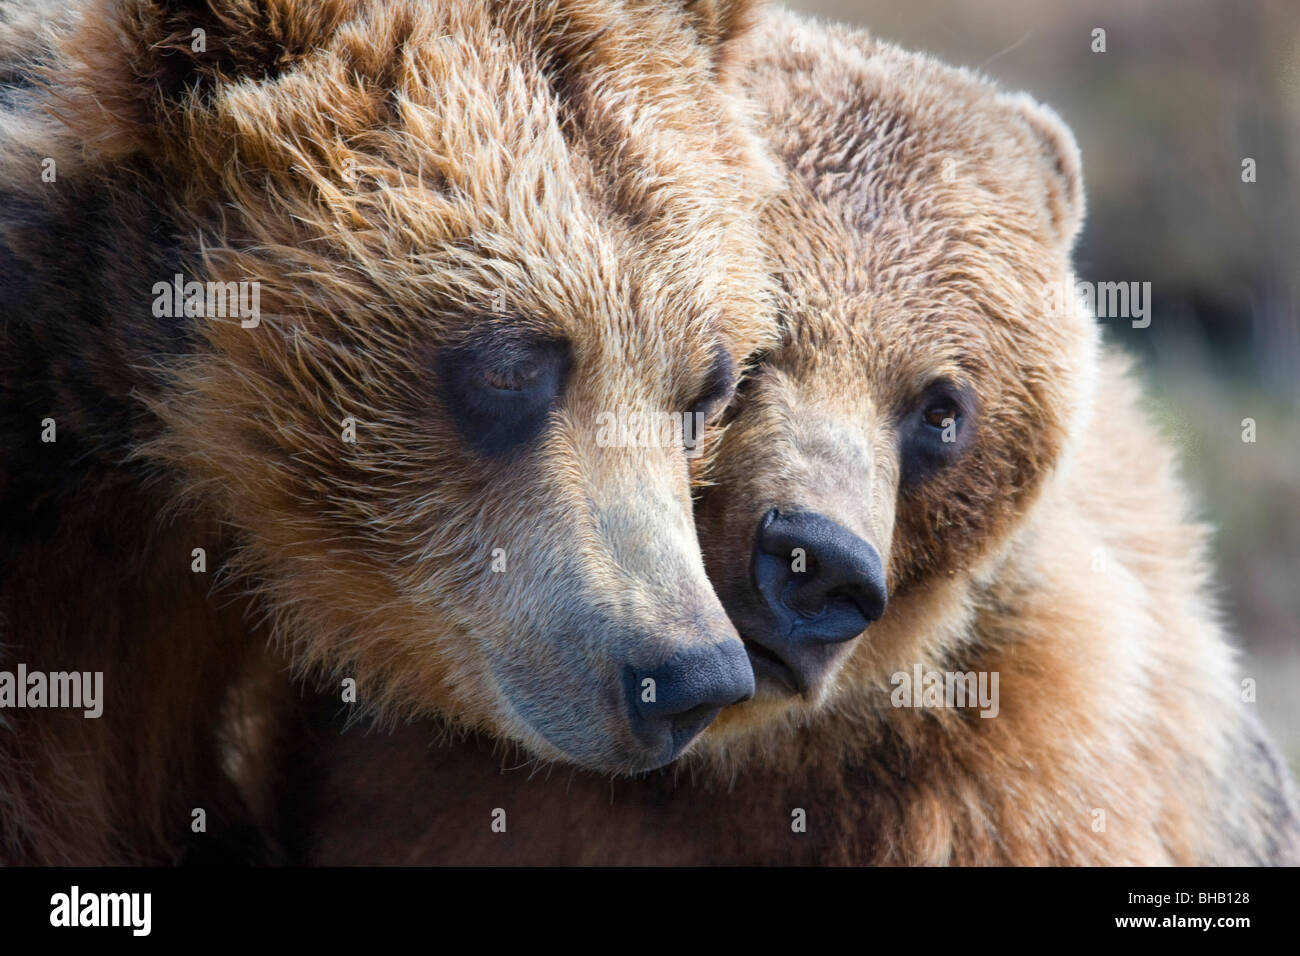 CAPTIVE Grizzly bears playing at the Alaska Wildlife Conservation Center, Southcentral Alaska - Stock Image